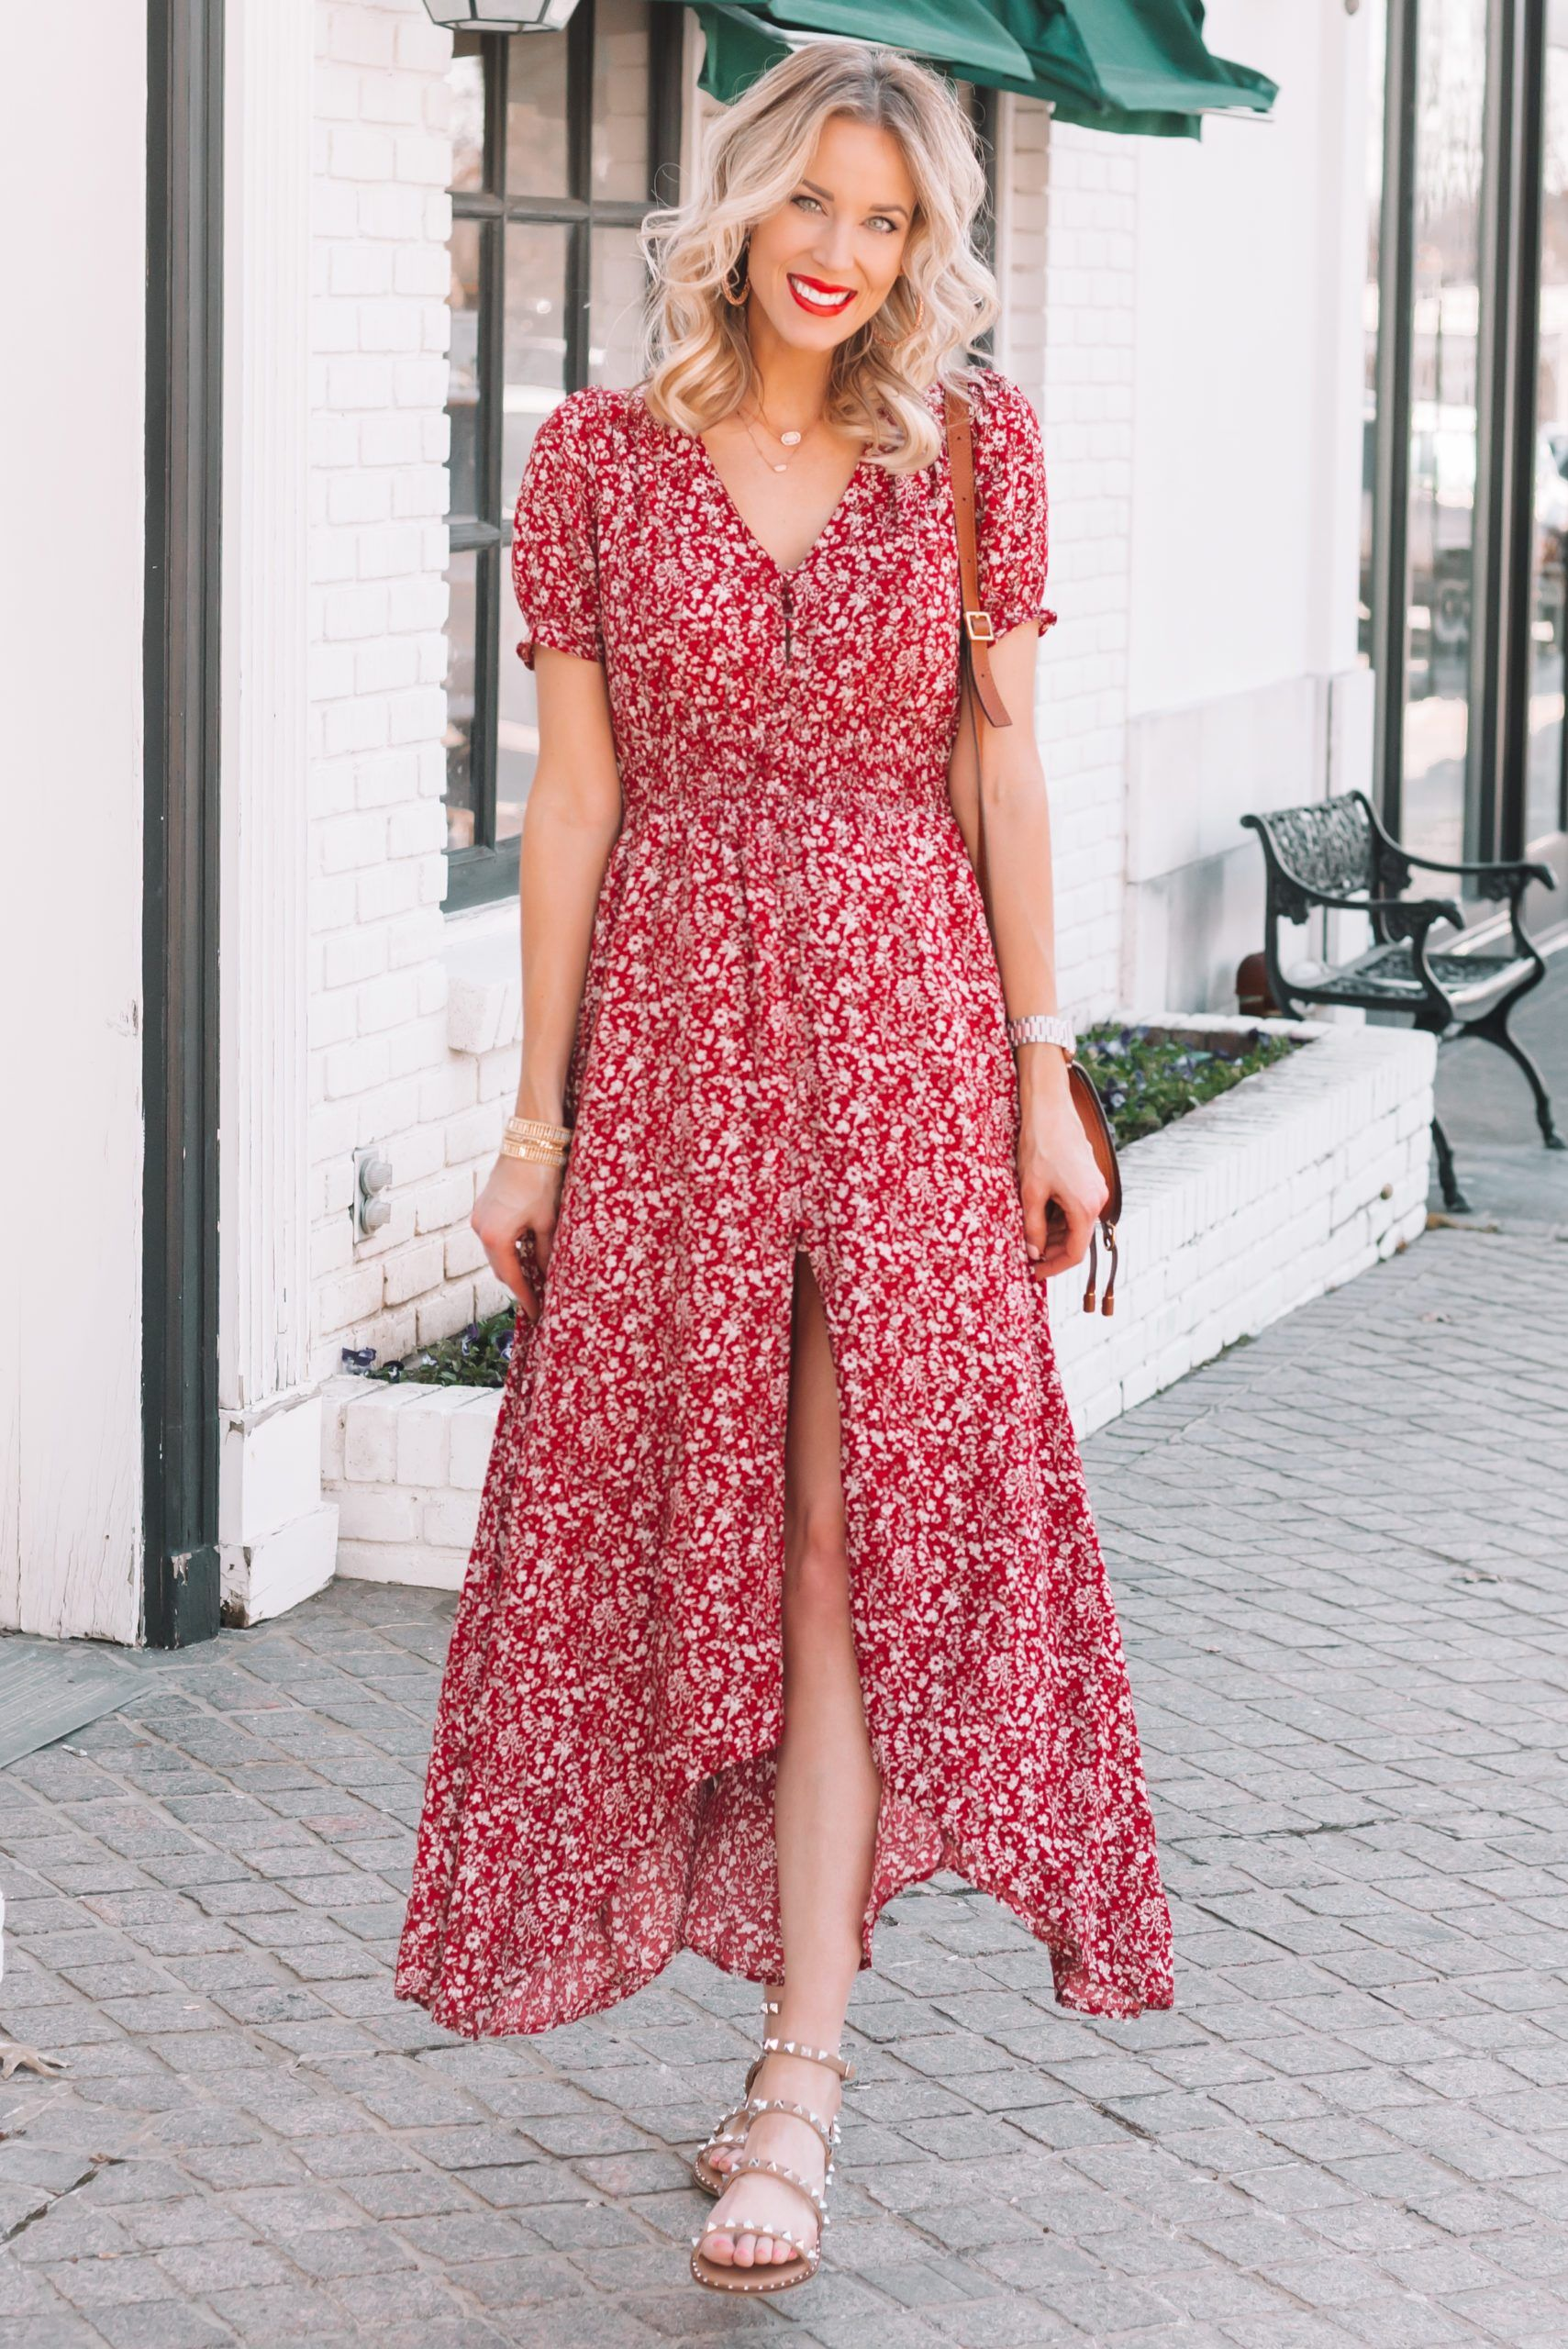 The It Sandals For Spring And Summer Straight A Style Pretty Red Dress Red Dress Maxi Red Dress [ 2560 x 1709 Pixel ]